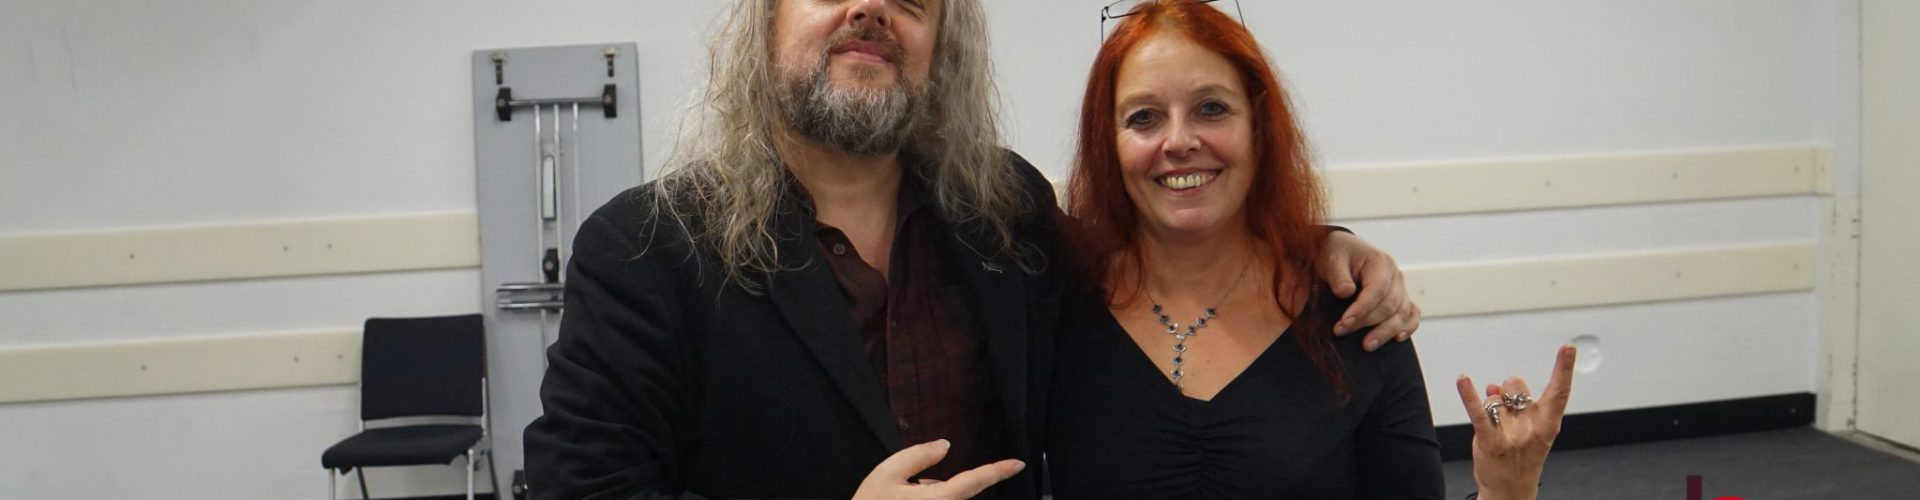 NIGHTWISH – Interview mit TROY DONOCKLEY Teil 1